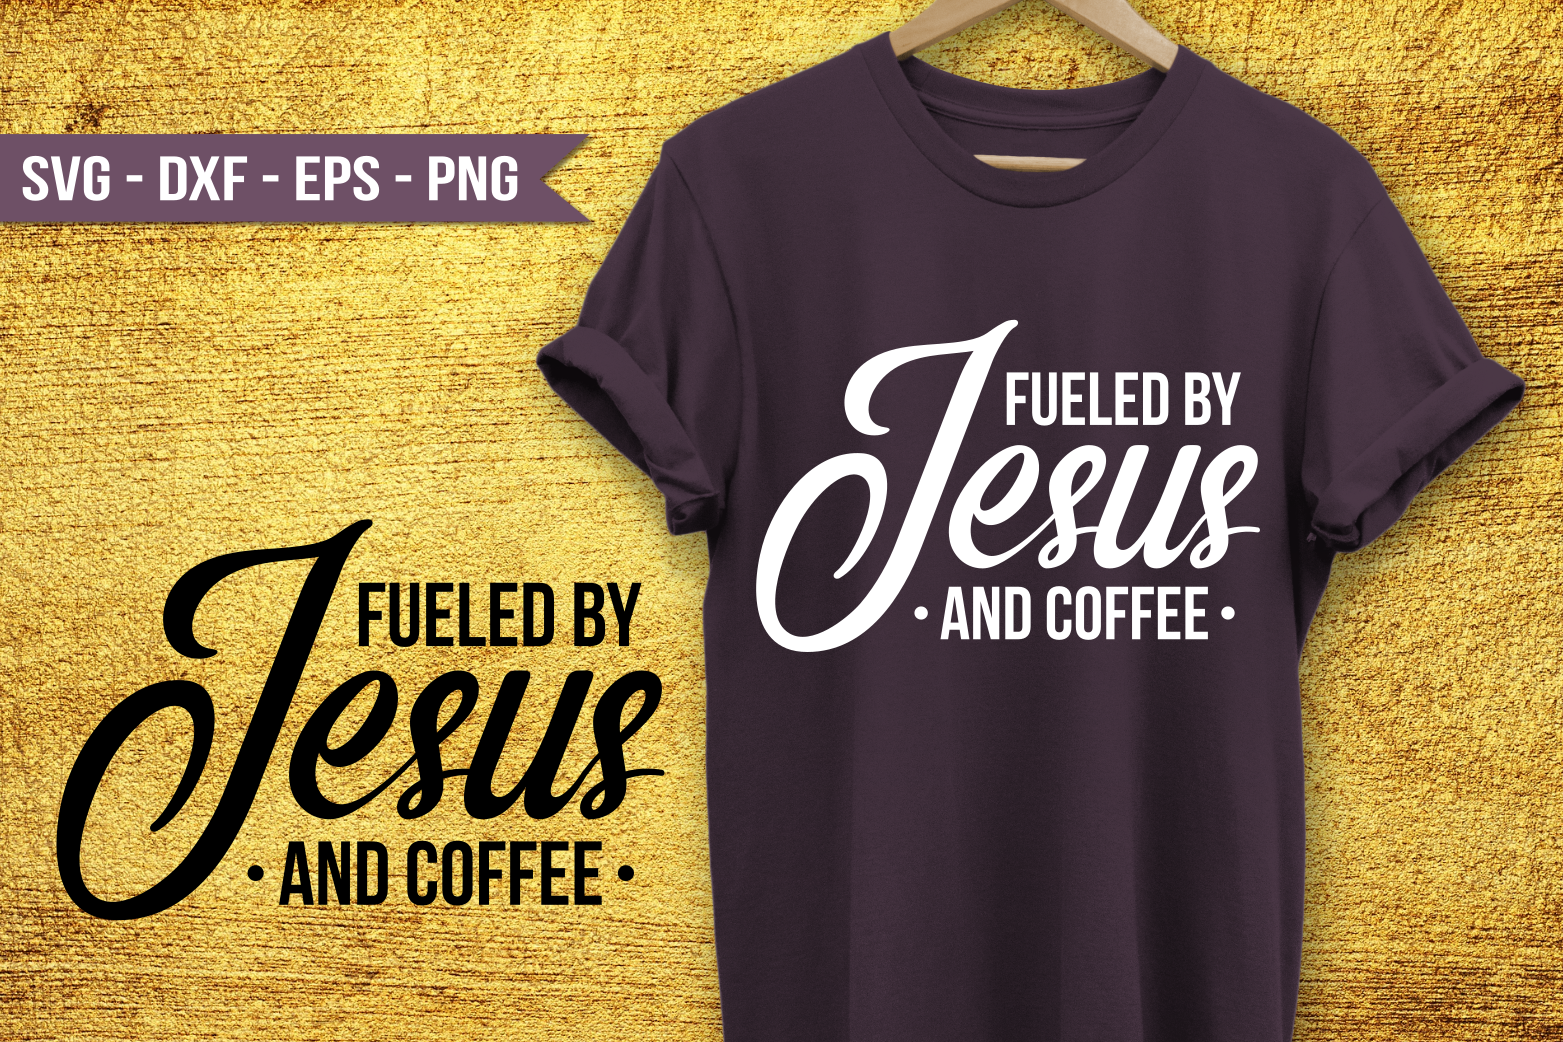 Fueled by Jesus and coffee SVG example image 1